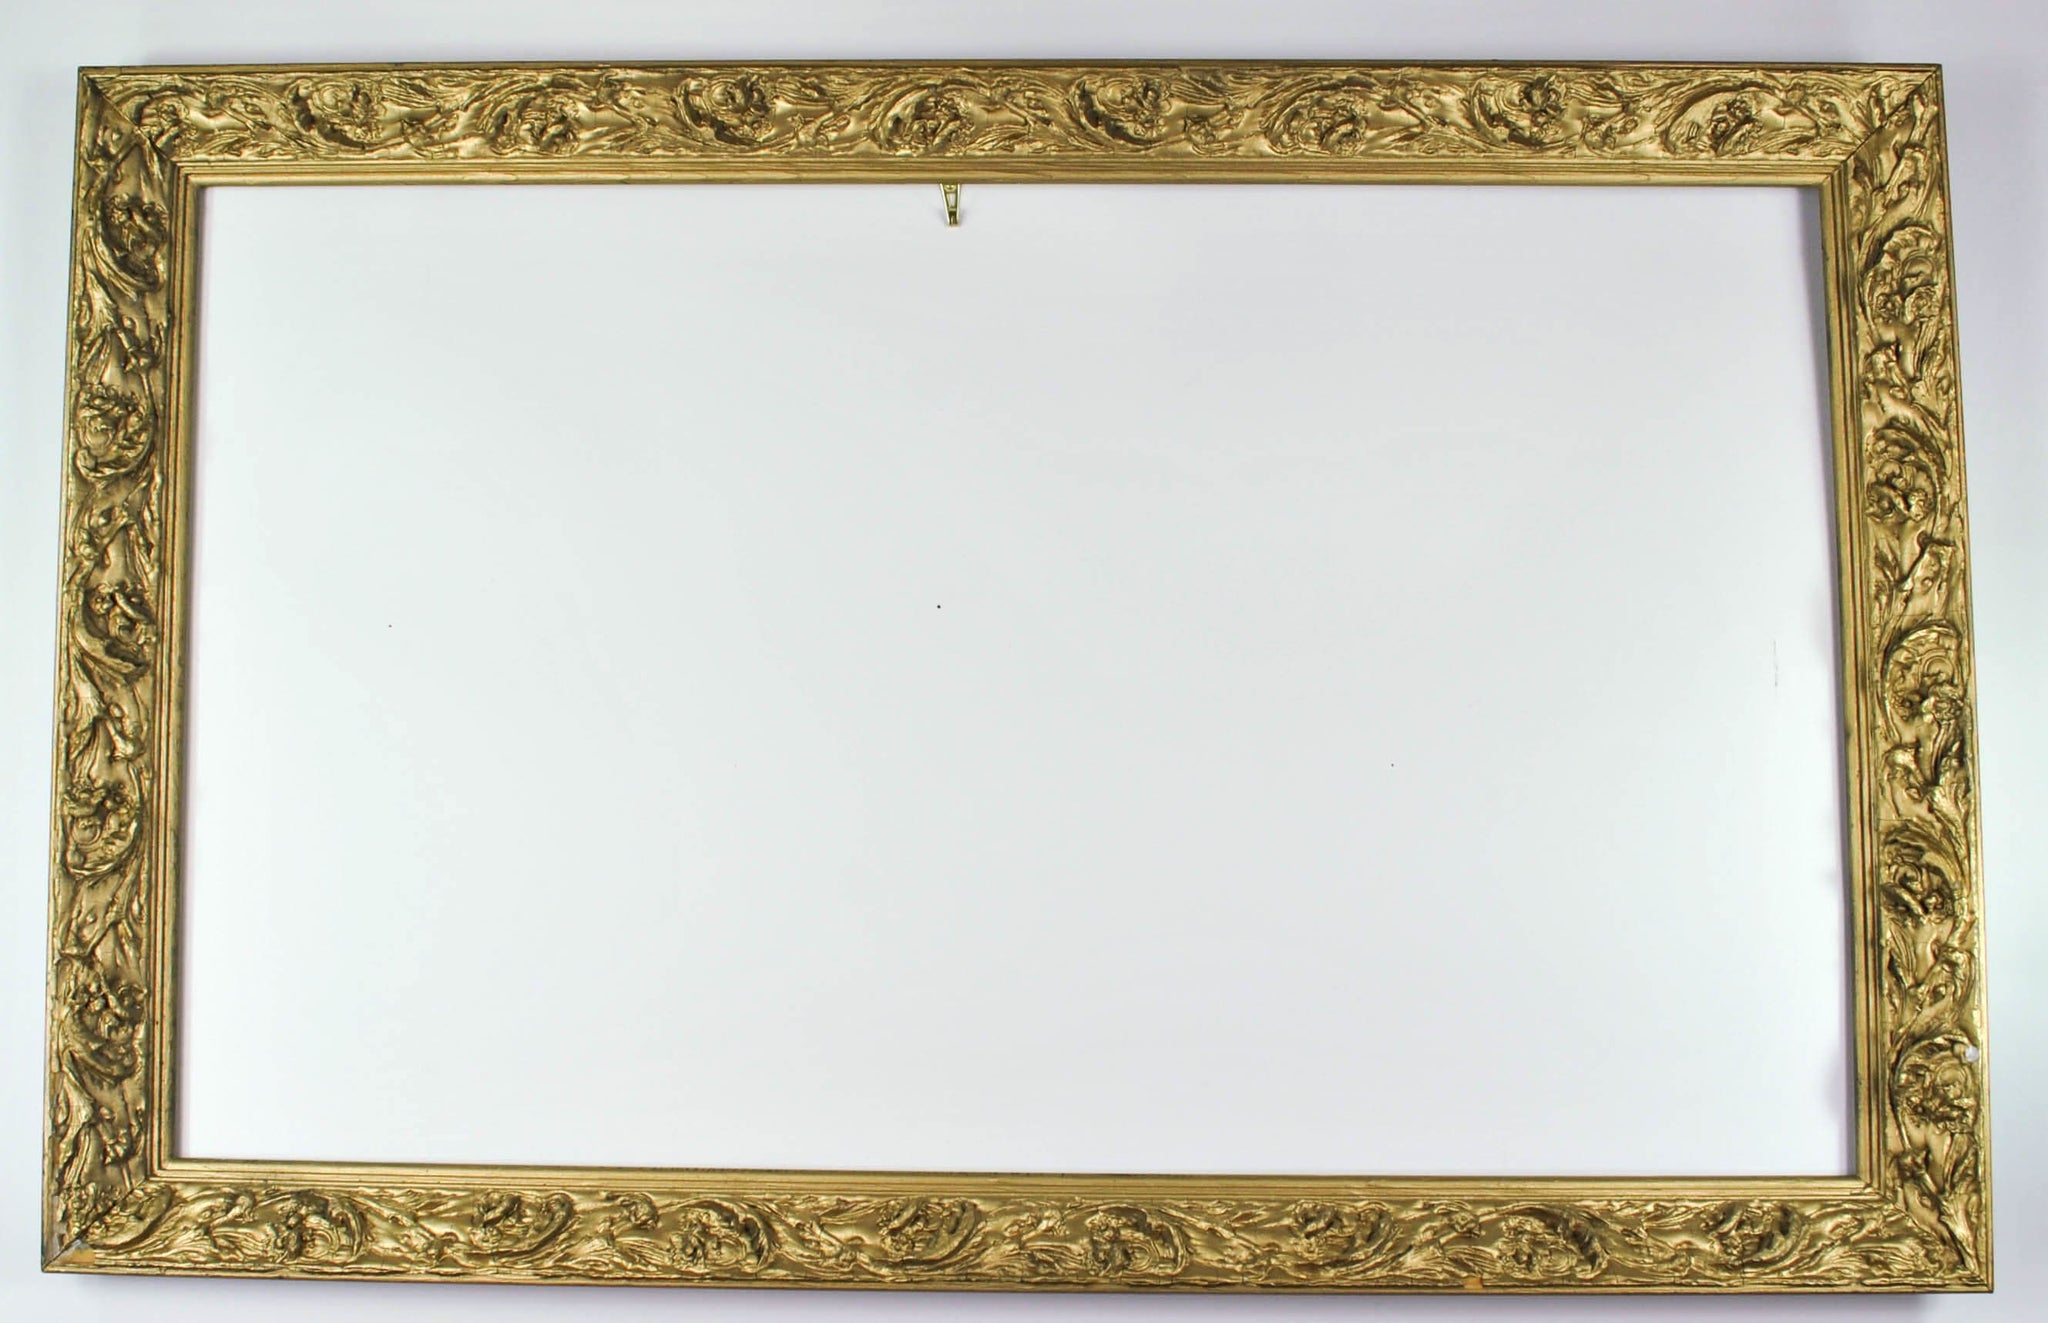 Antique Carved Wood Gold Gilt European Style Frame with Baroque ...